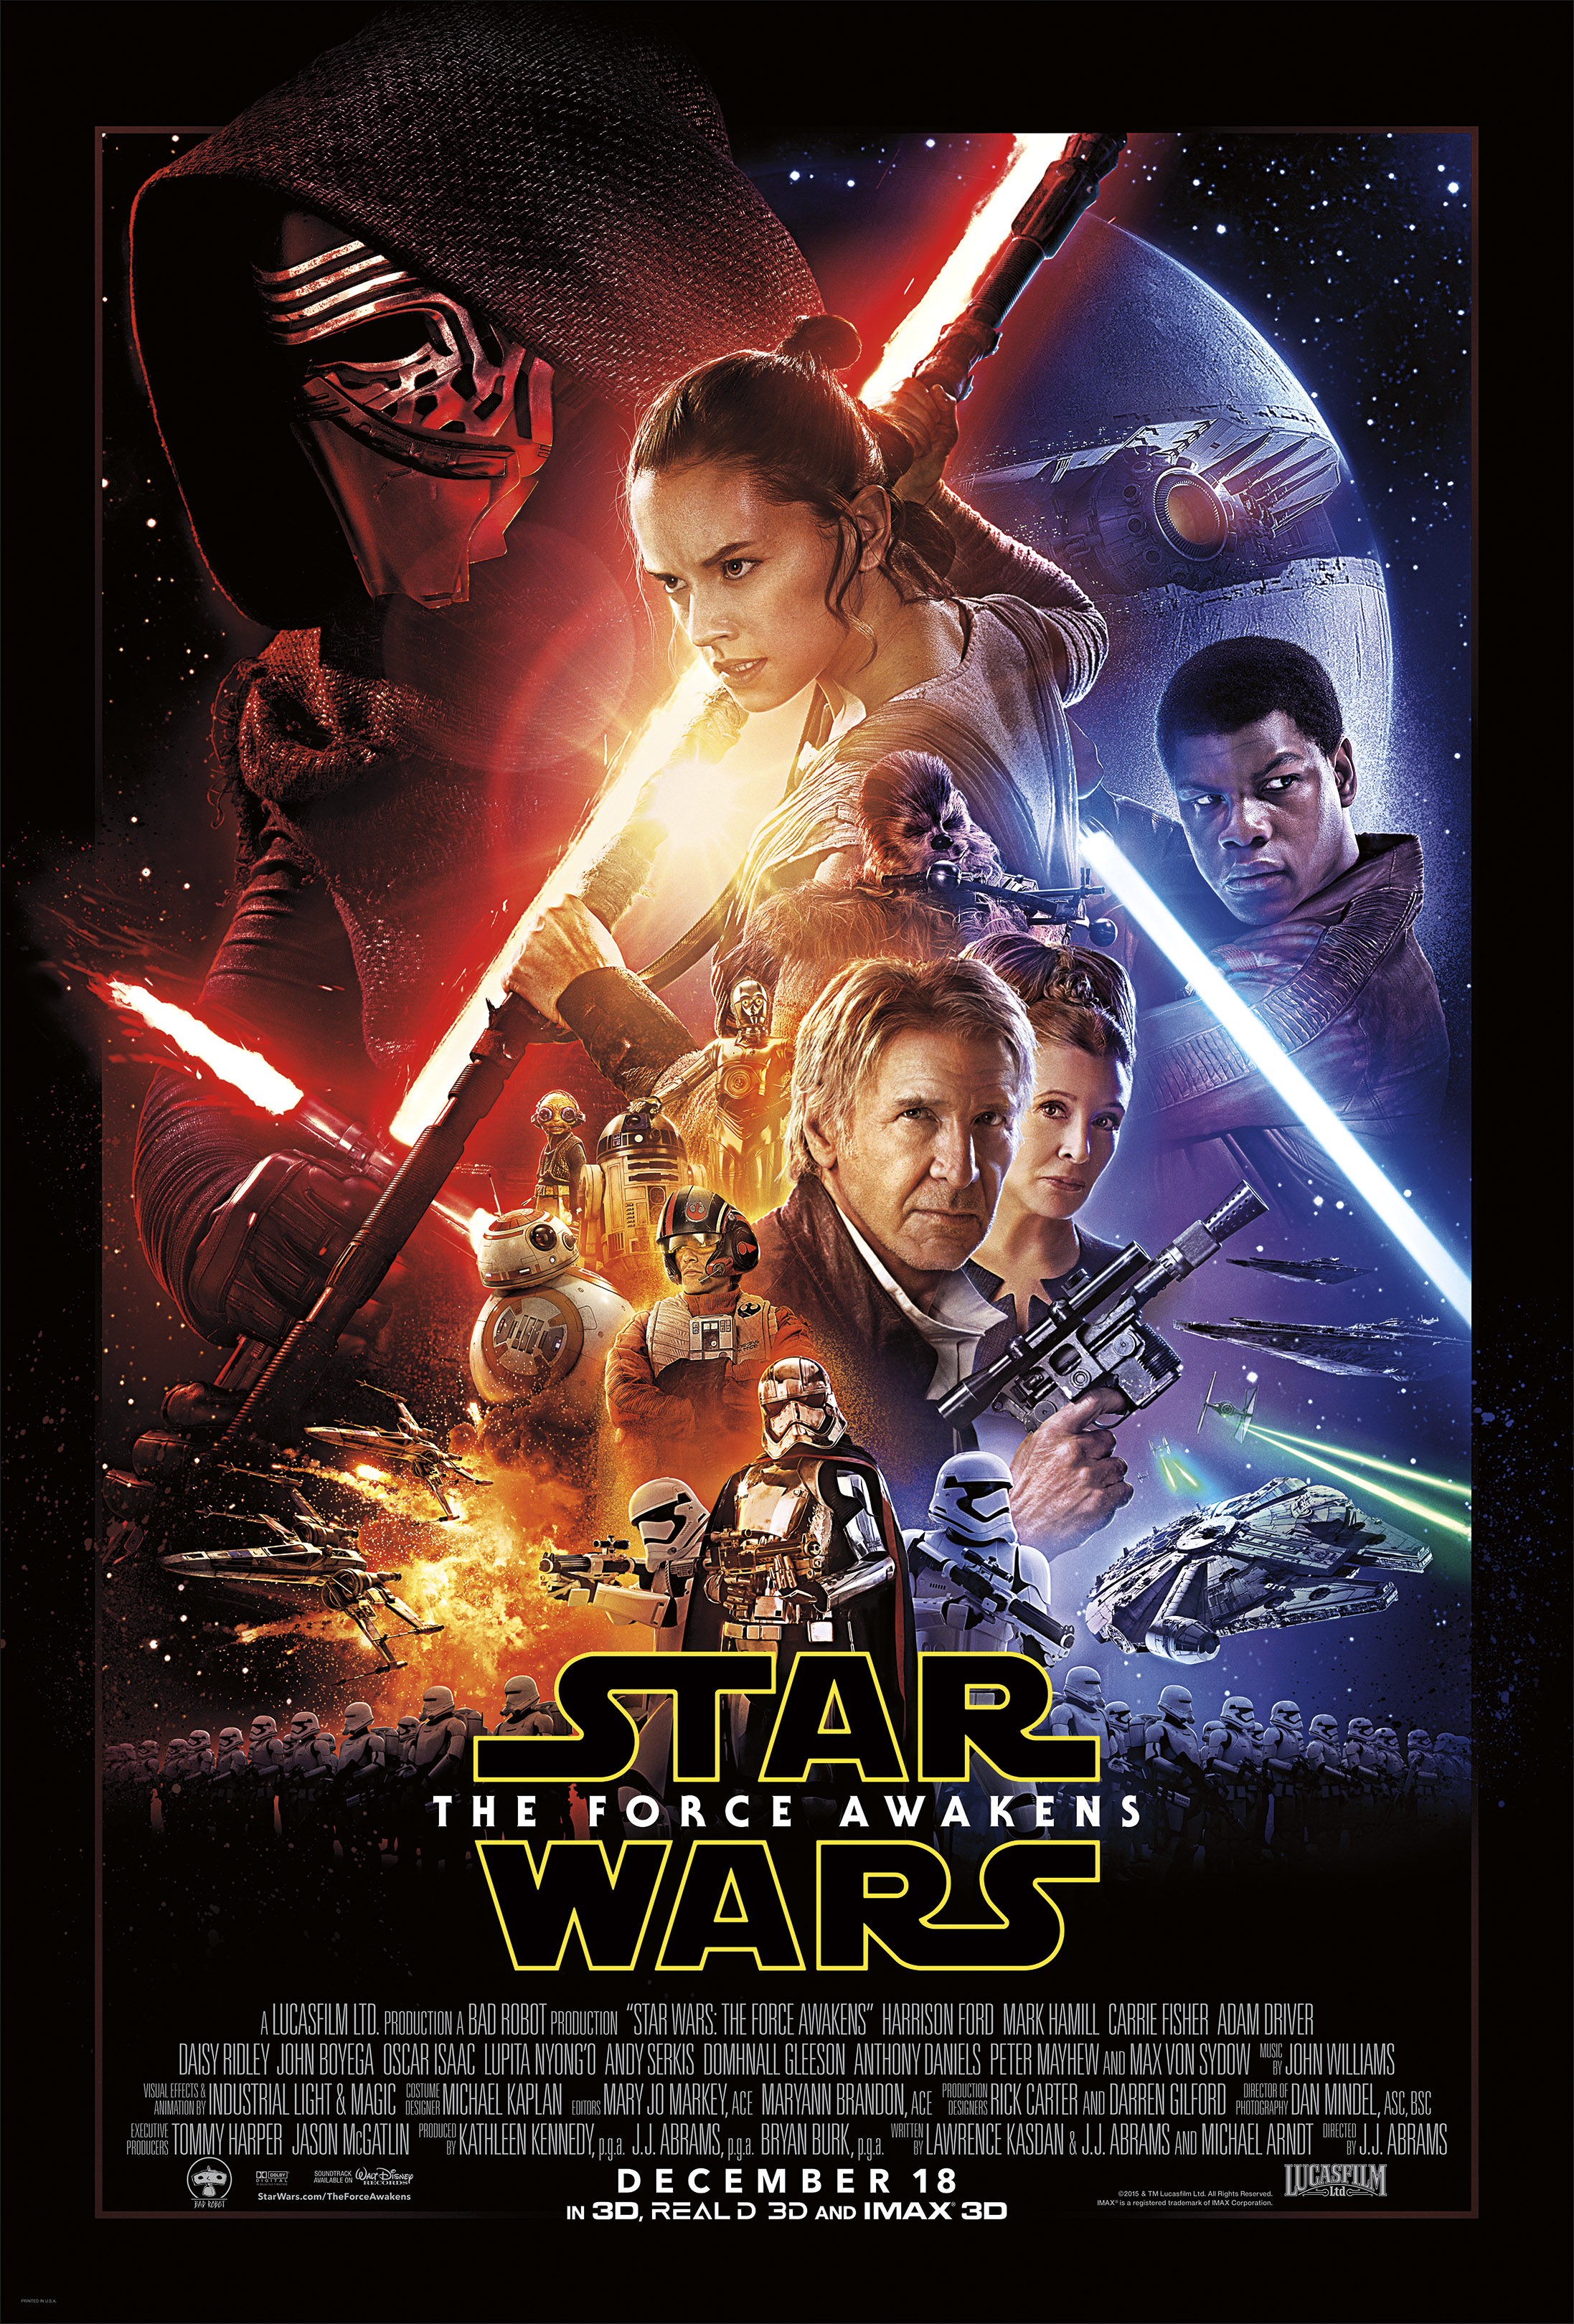 star wars episode 4 download 1080p